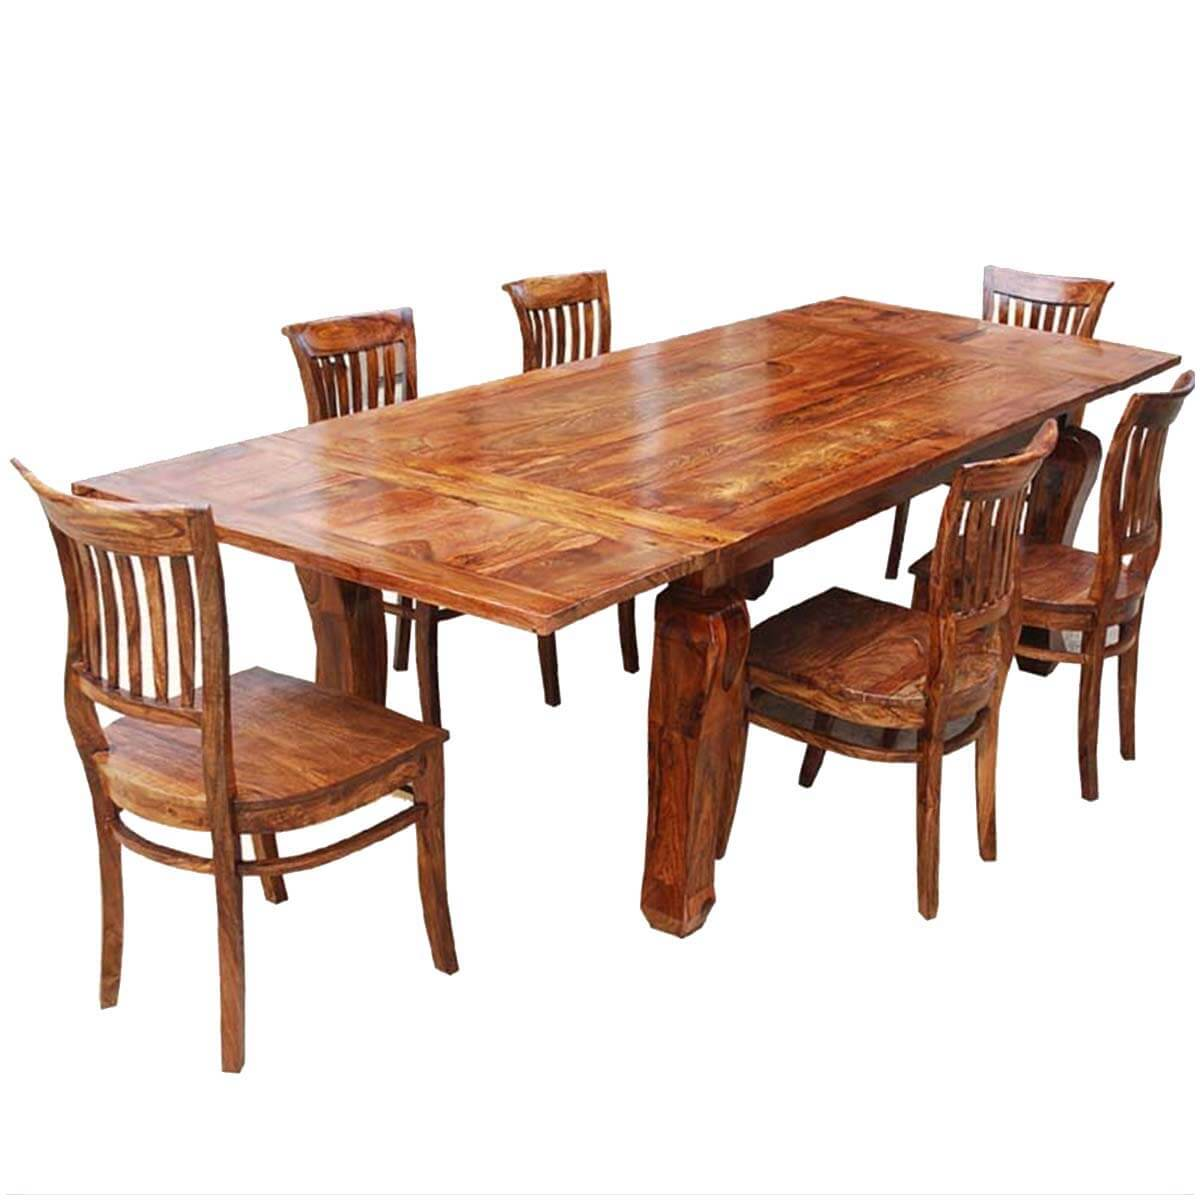 rustic lincoln study dining table 6 barrel back chairs w